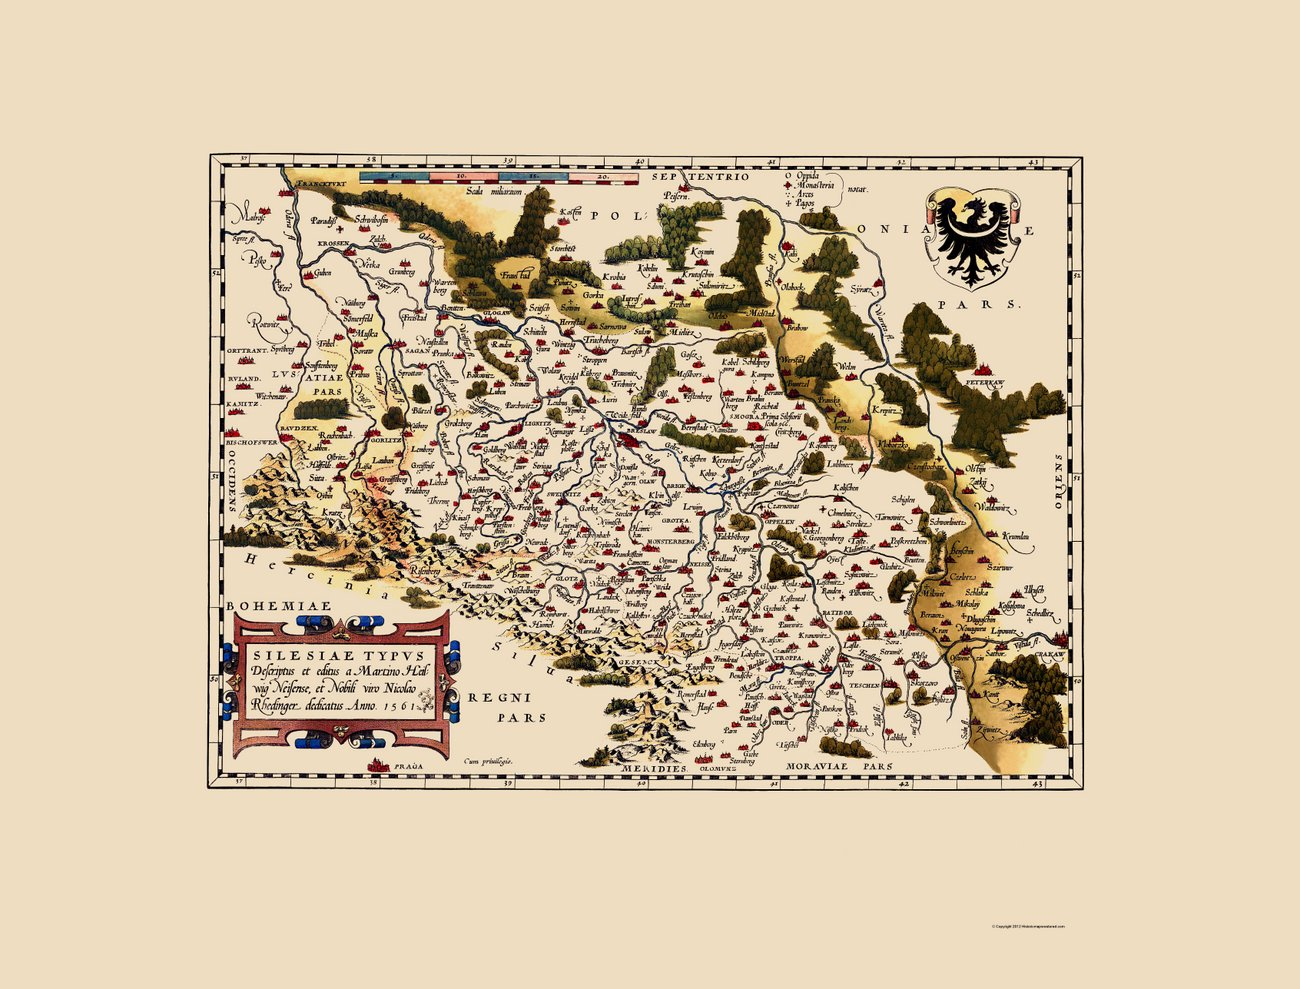 ITSI0002_a.jpg